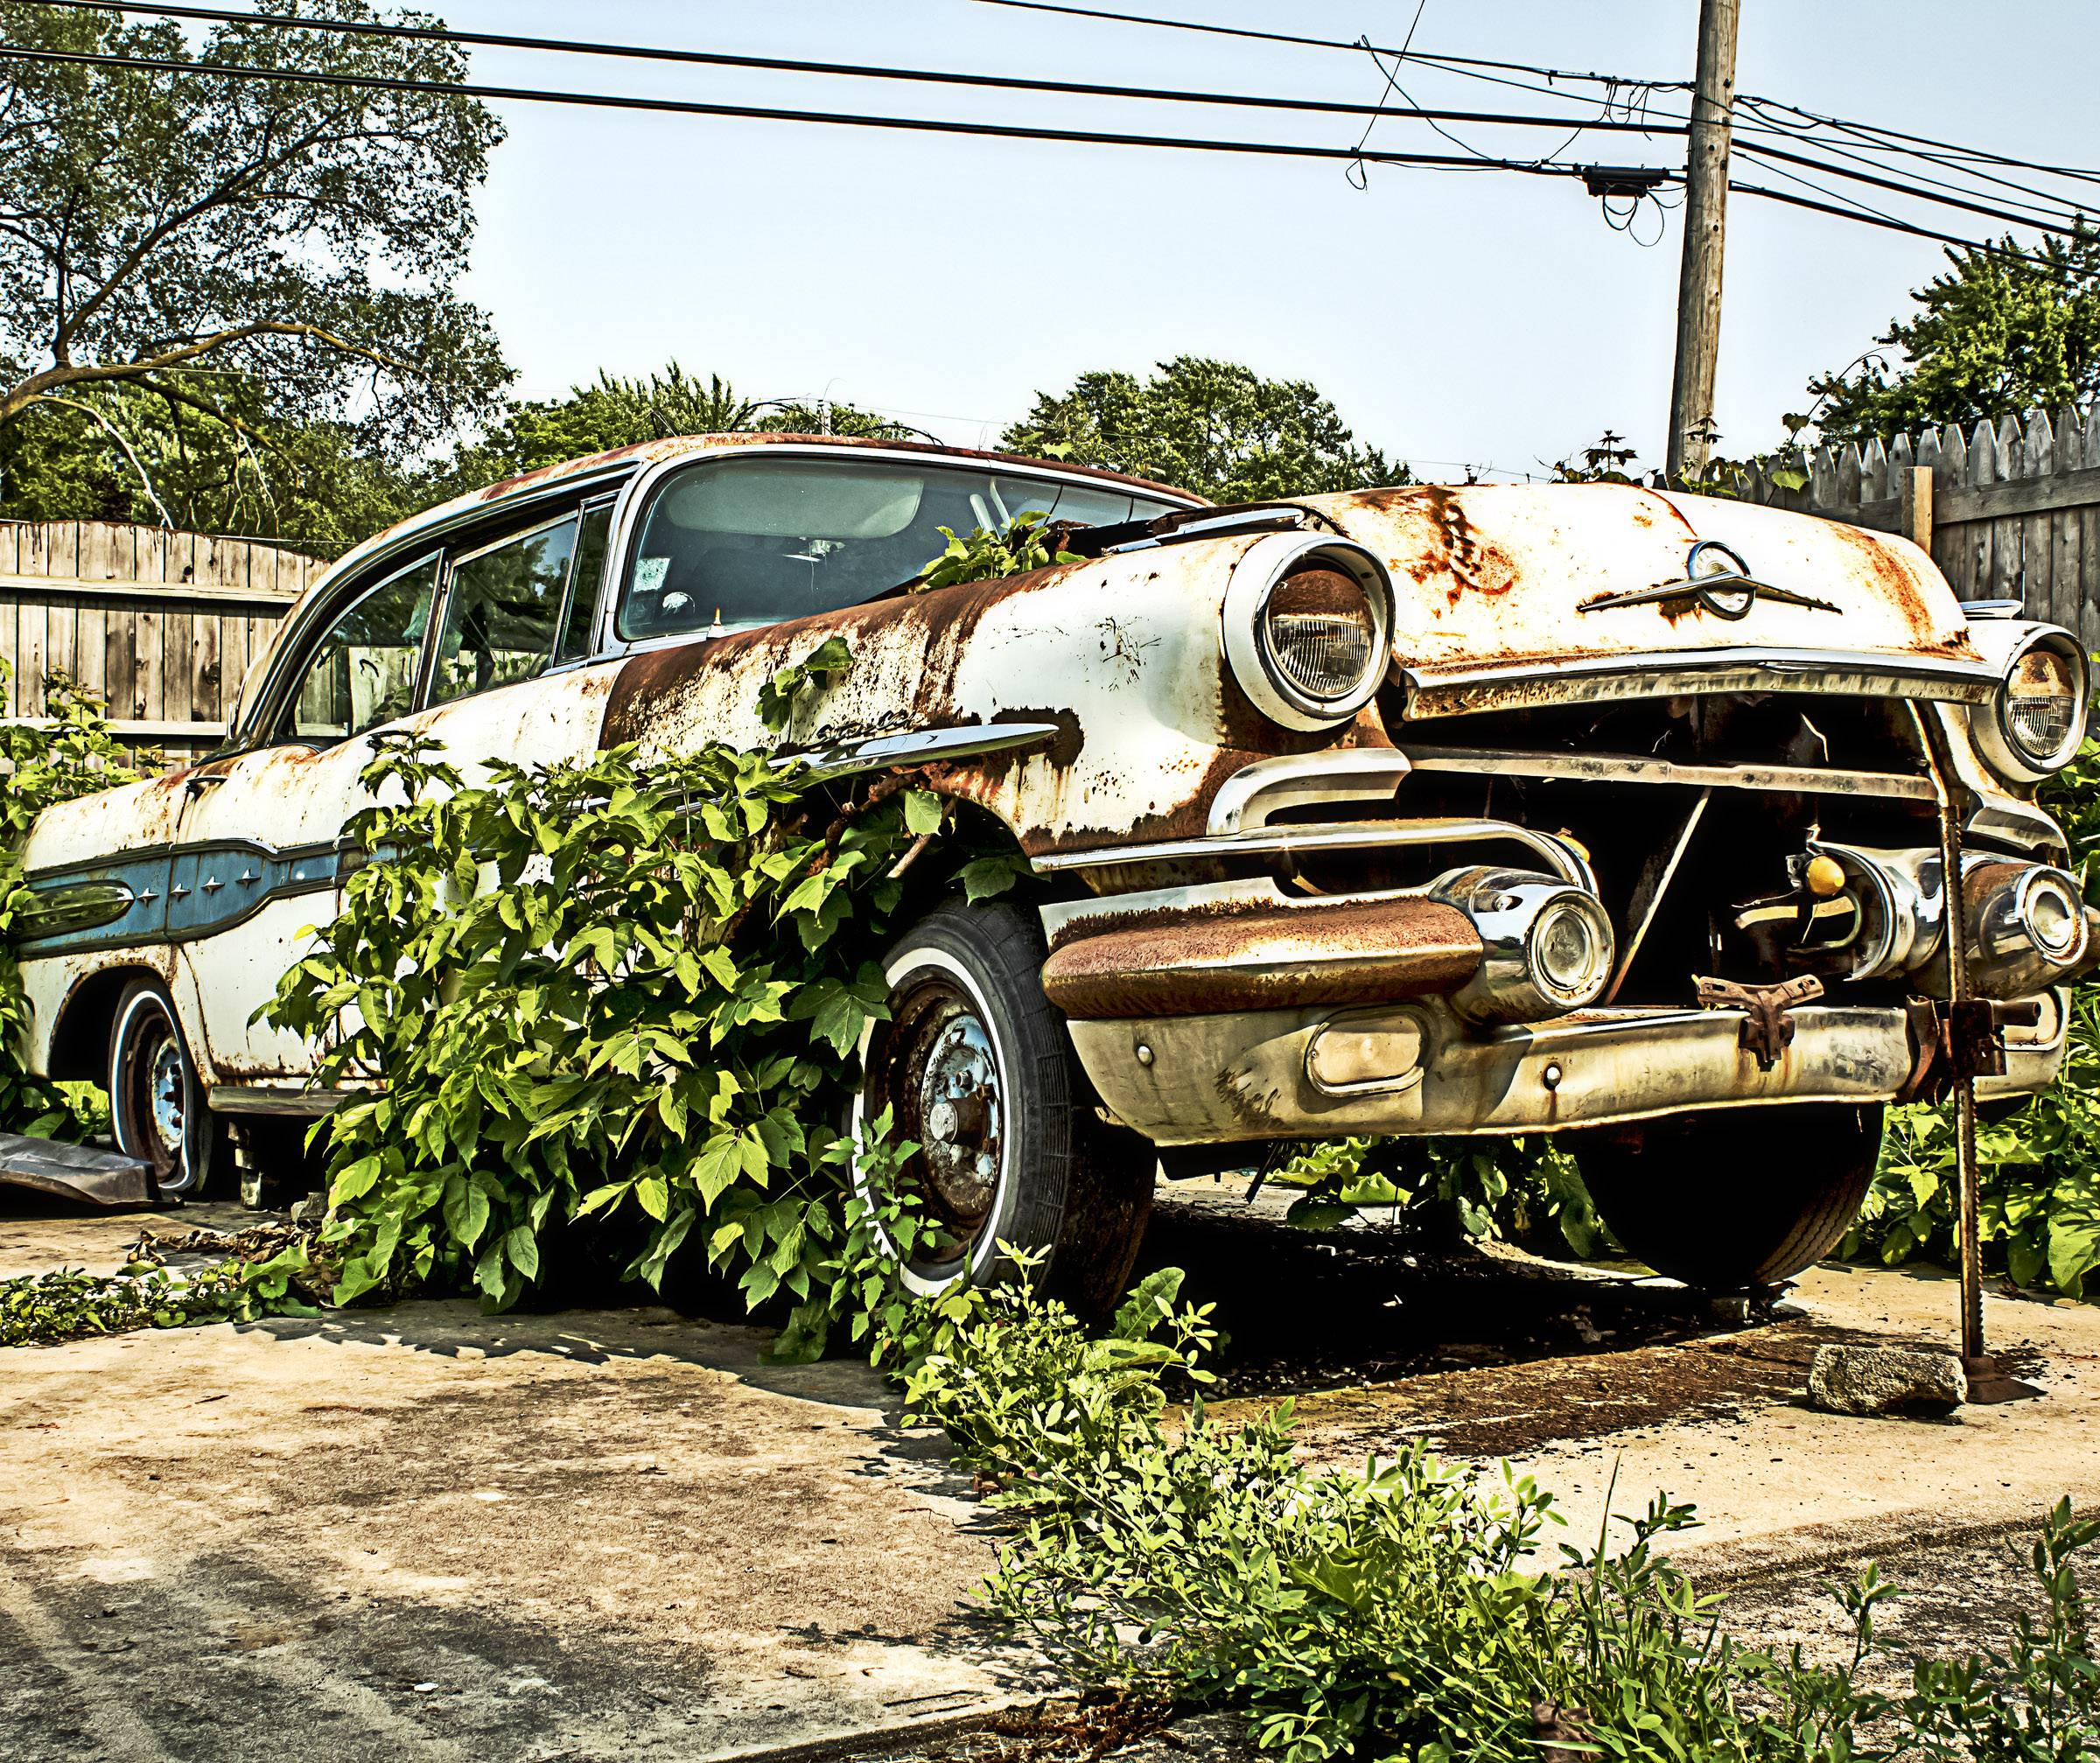 A vintage 1955 Oldsmobile sits in a neighborhood backyard, rusting away and gathering plant life.